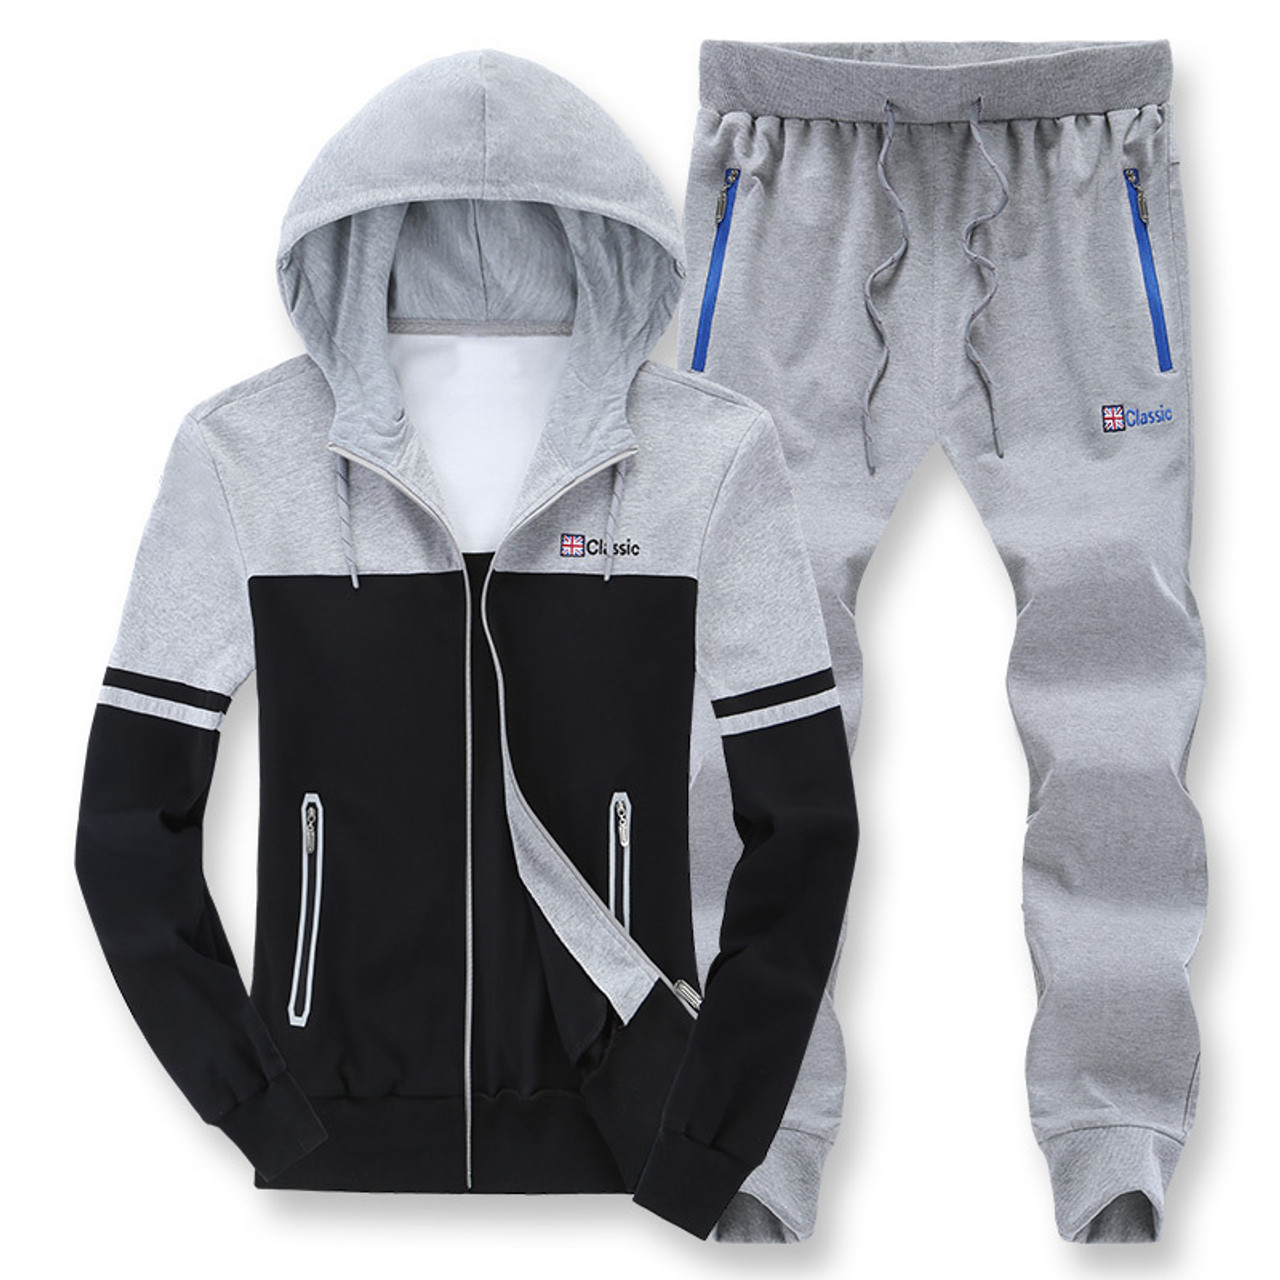 be1583df Men's casual sportswear fat big size 8XL hooded tracksuit cotton sweater  plus size men sets oversize ...